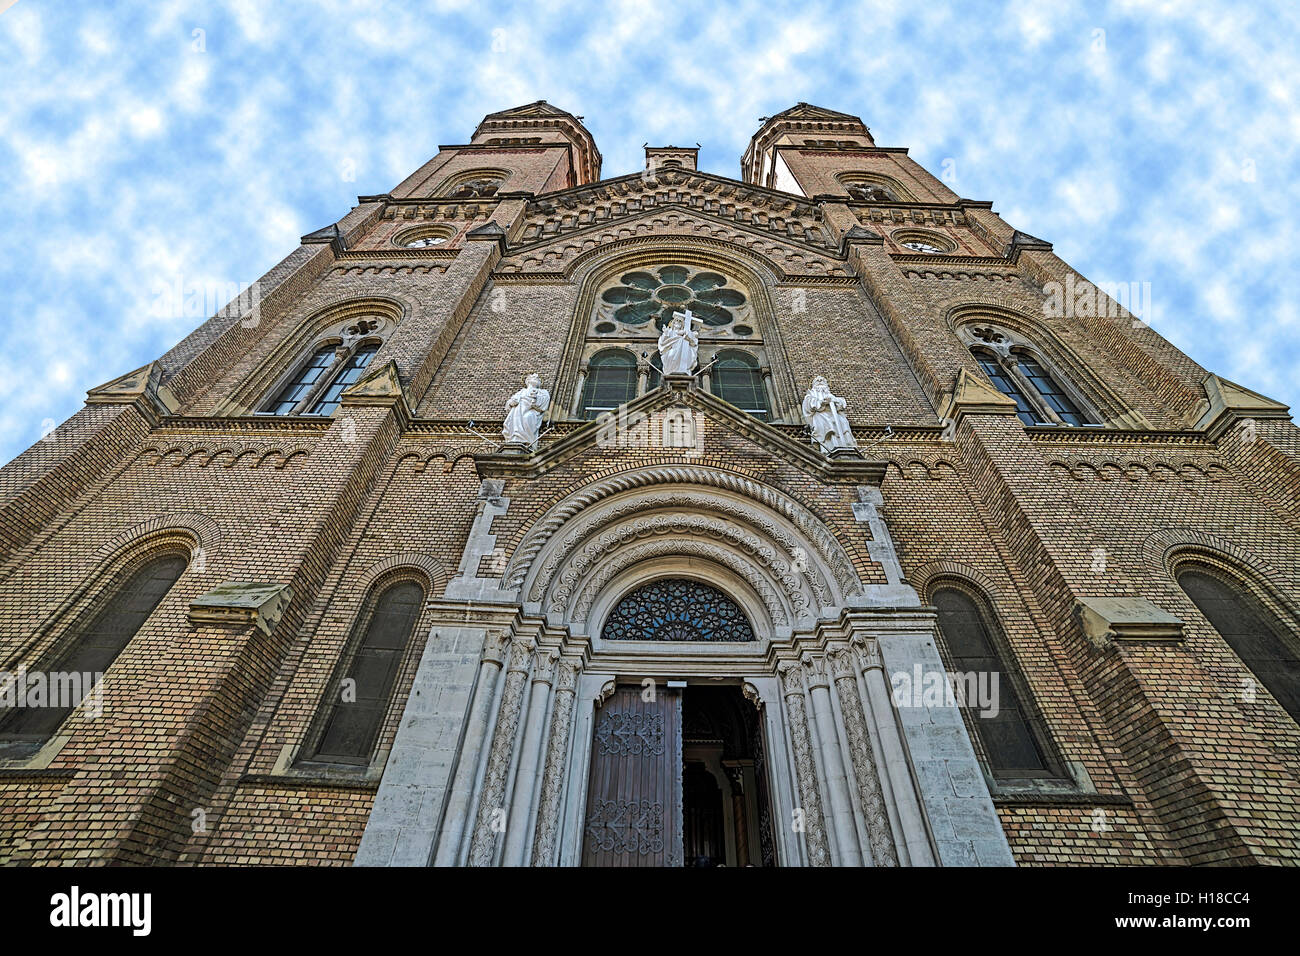 Front perspective view of the cathedral Millennium from